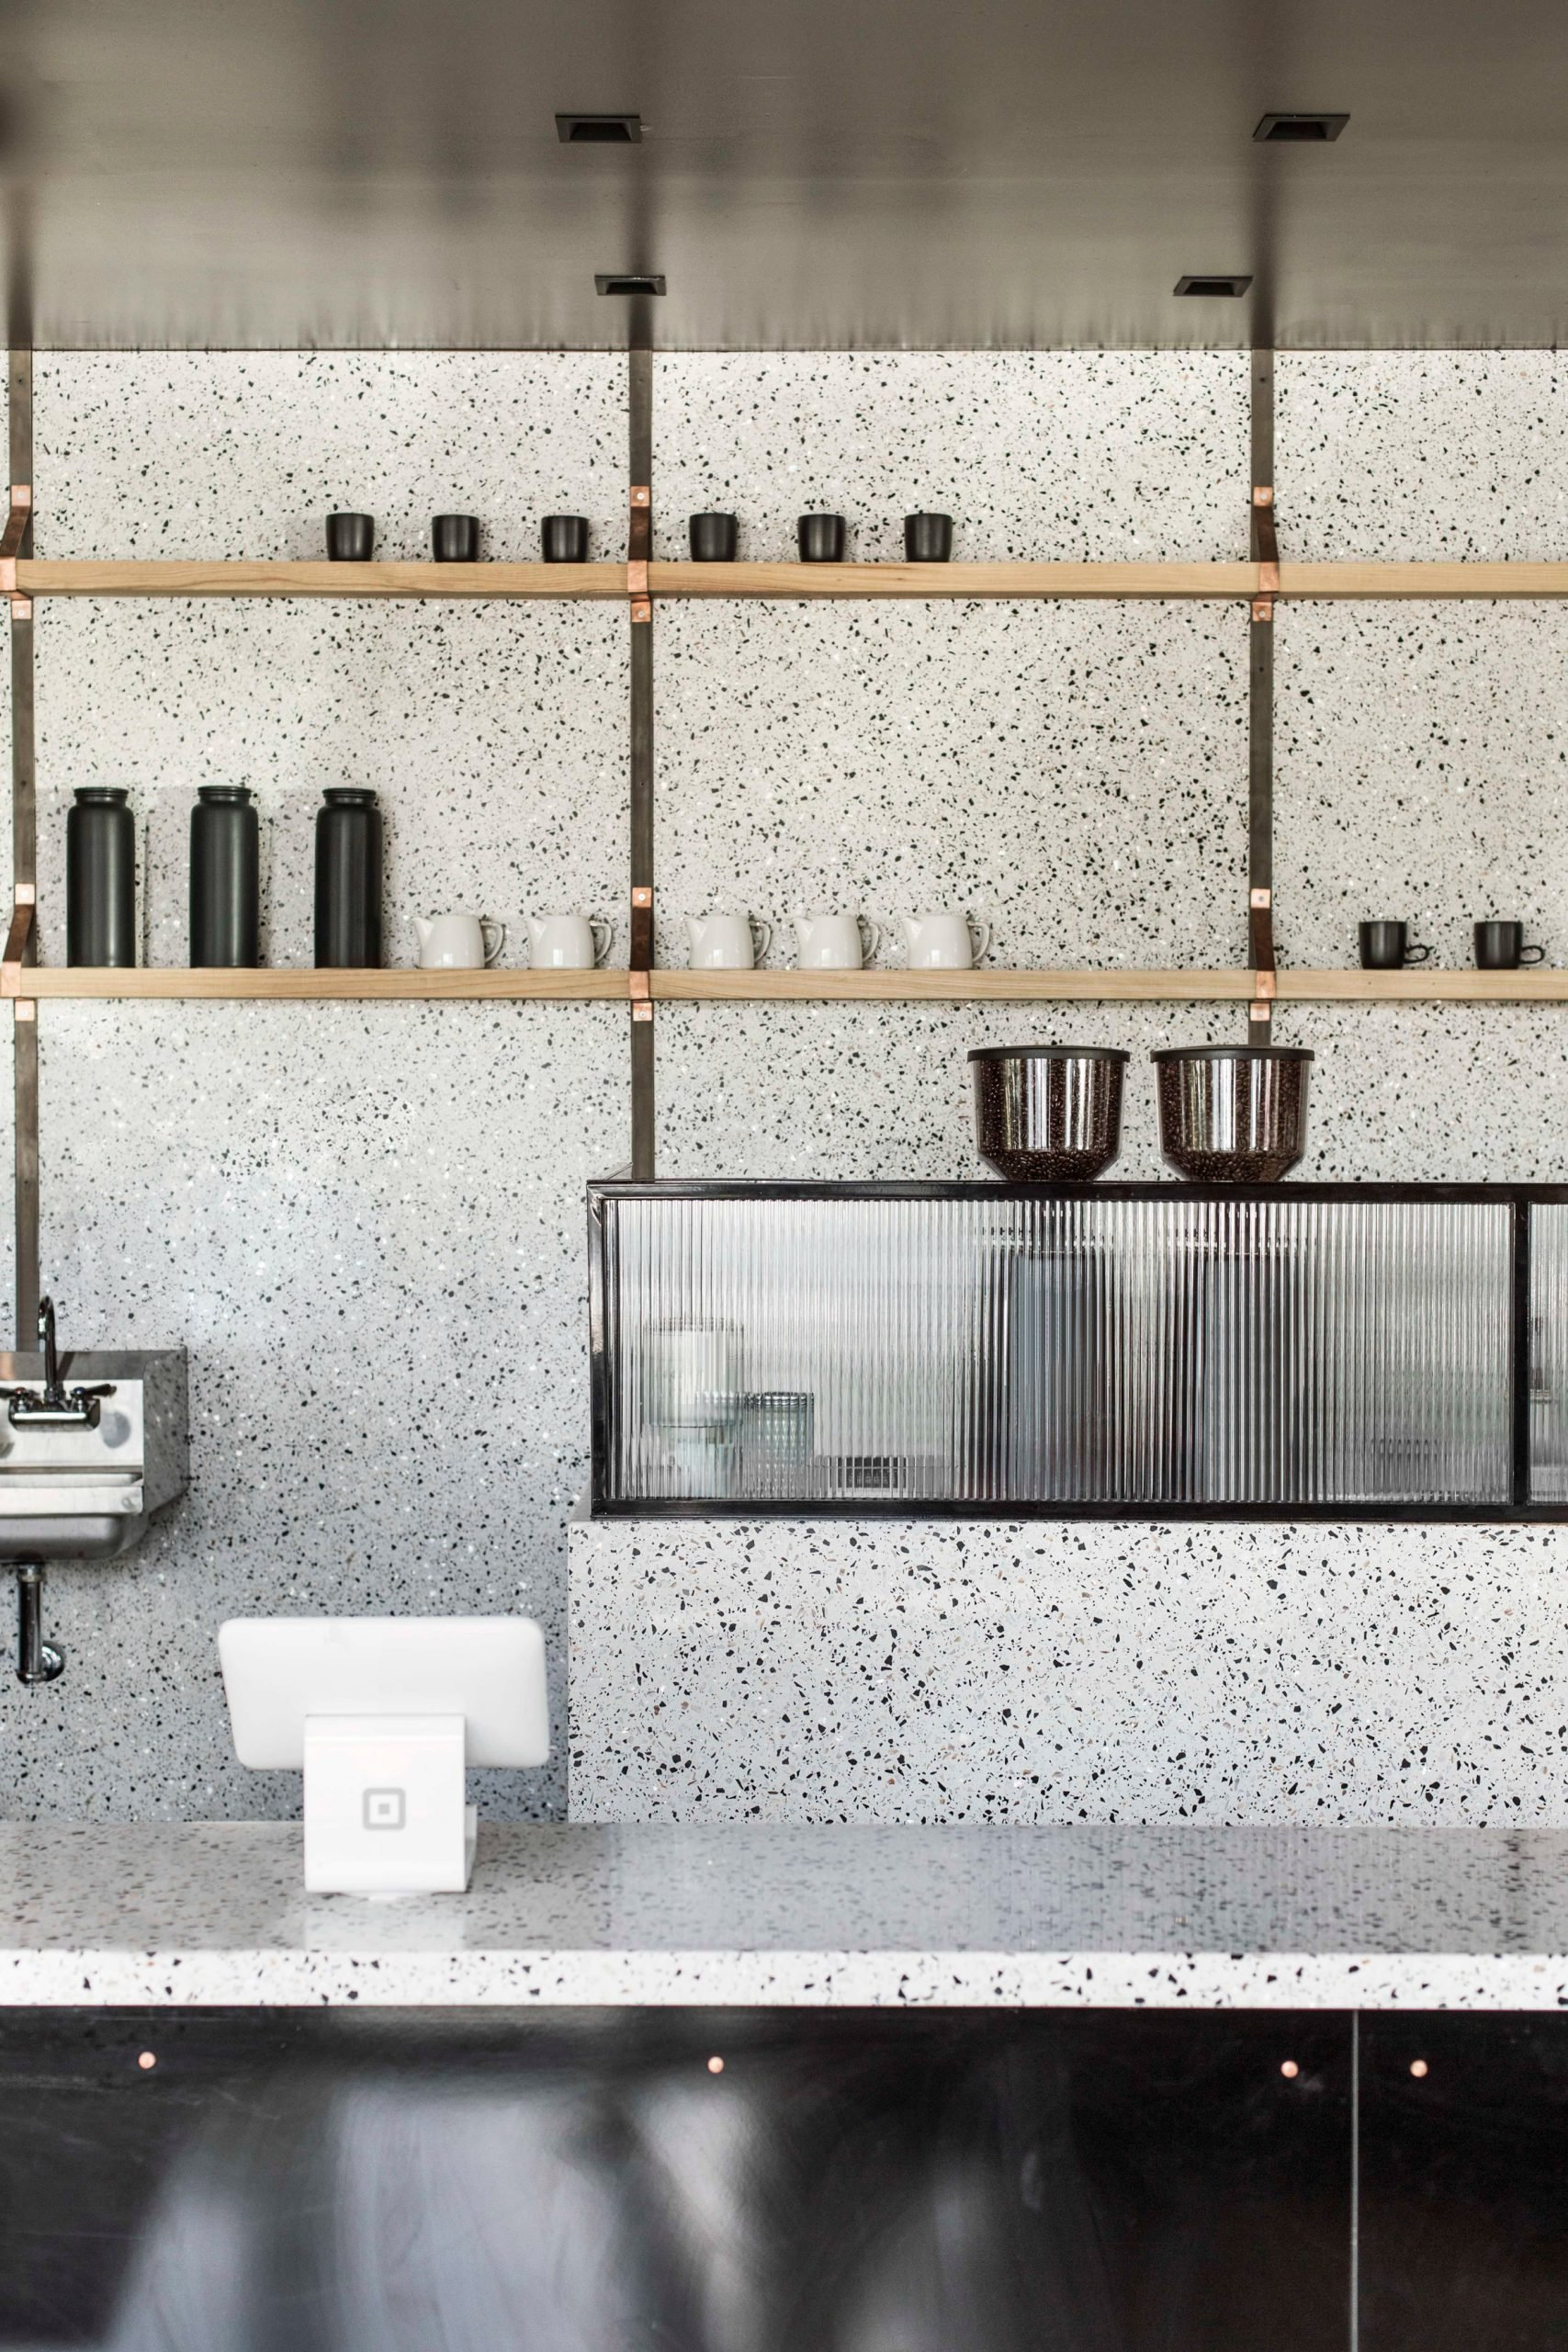 Terrazzo coffee bar with wooden shelves